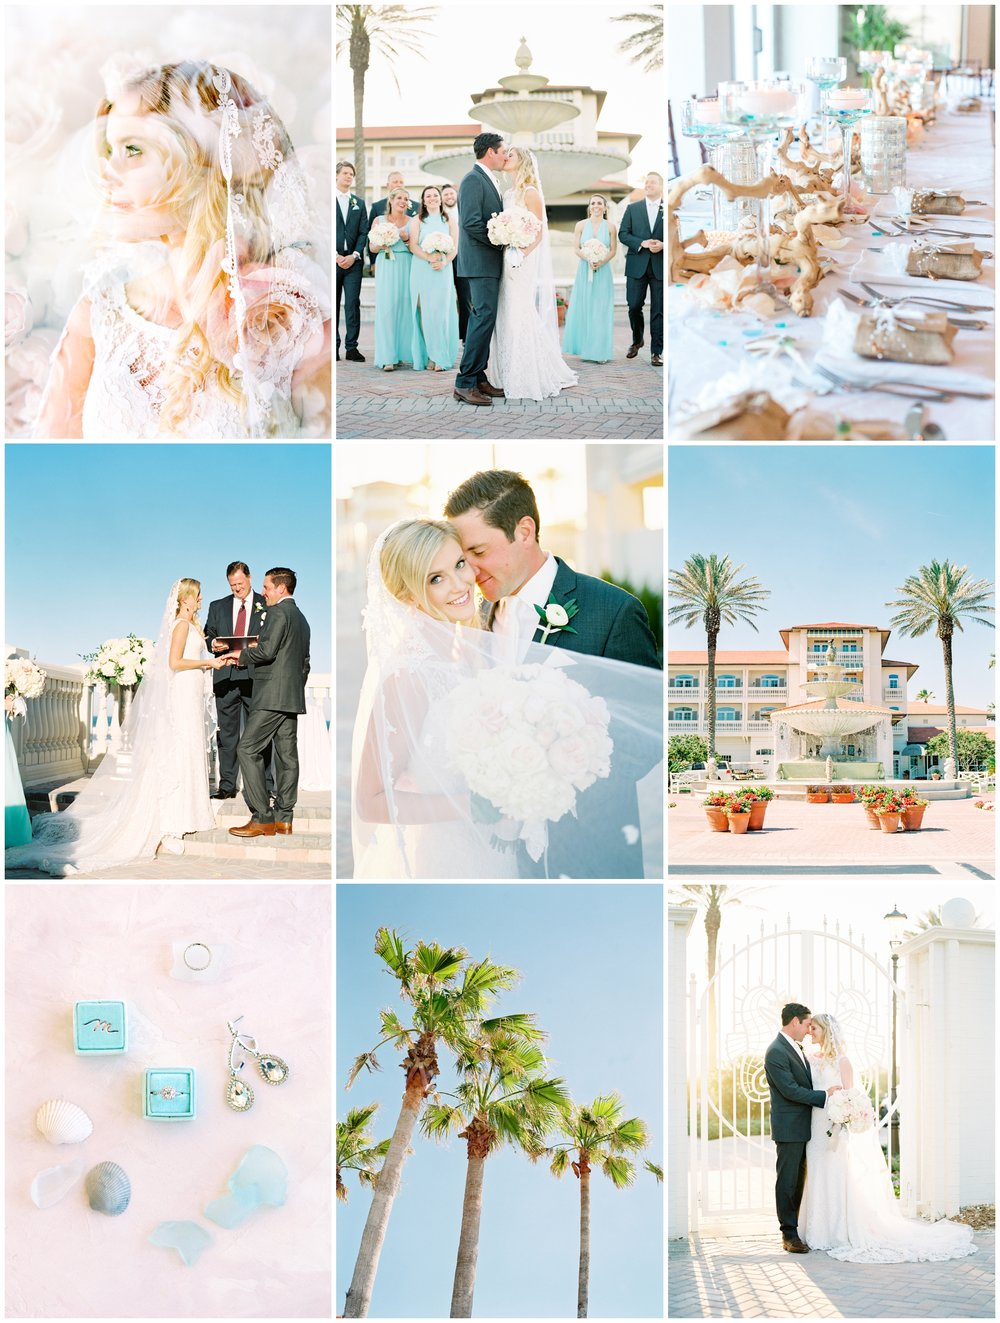 Shannon and Greg | The Ponte Vedra Inn and Club | Ponte Vedra Beach, Florida